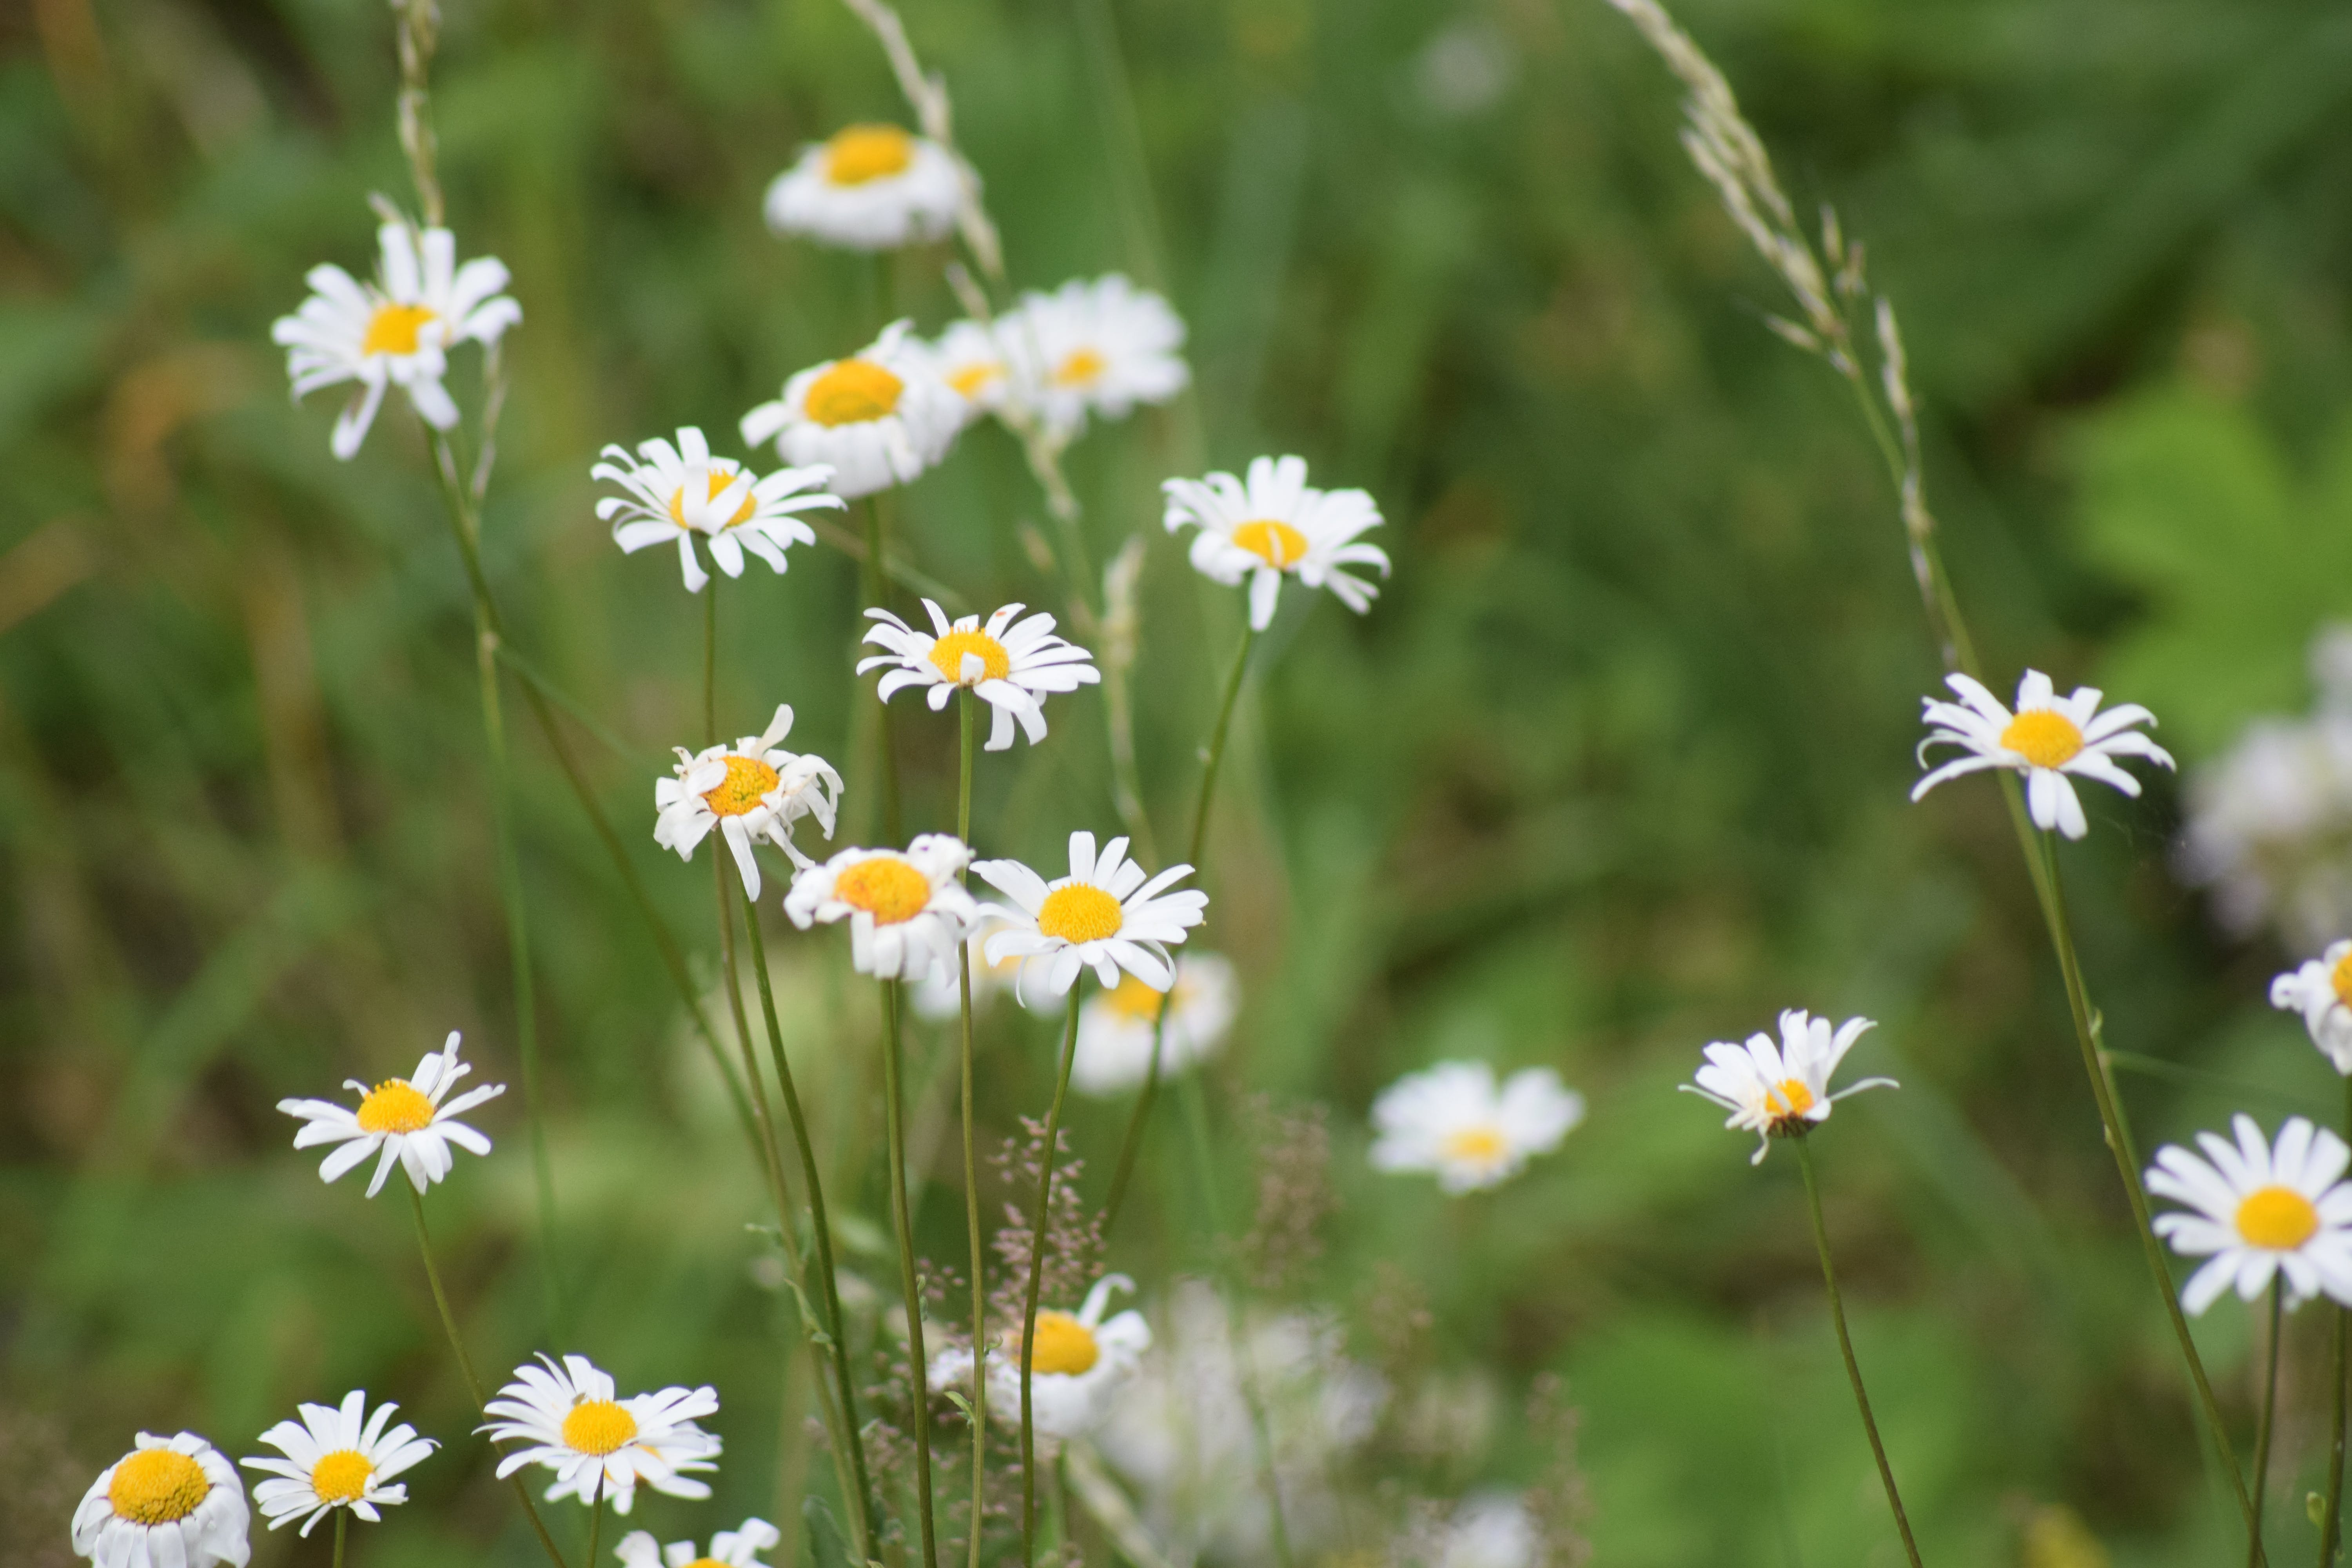 Free stock photo of daisies, daisy, flowers, green